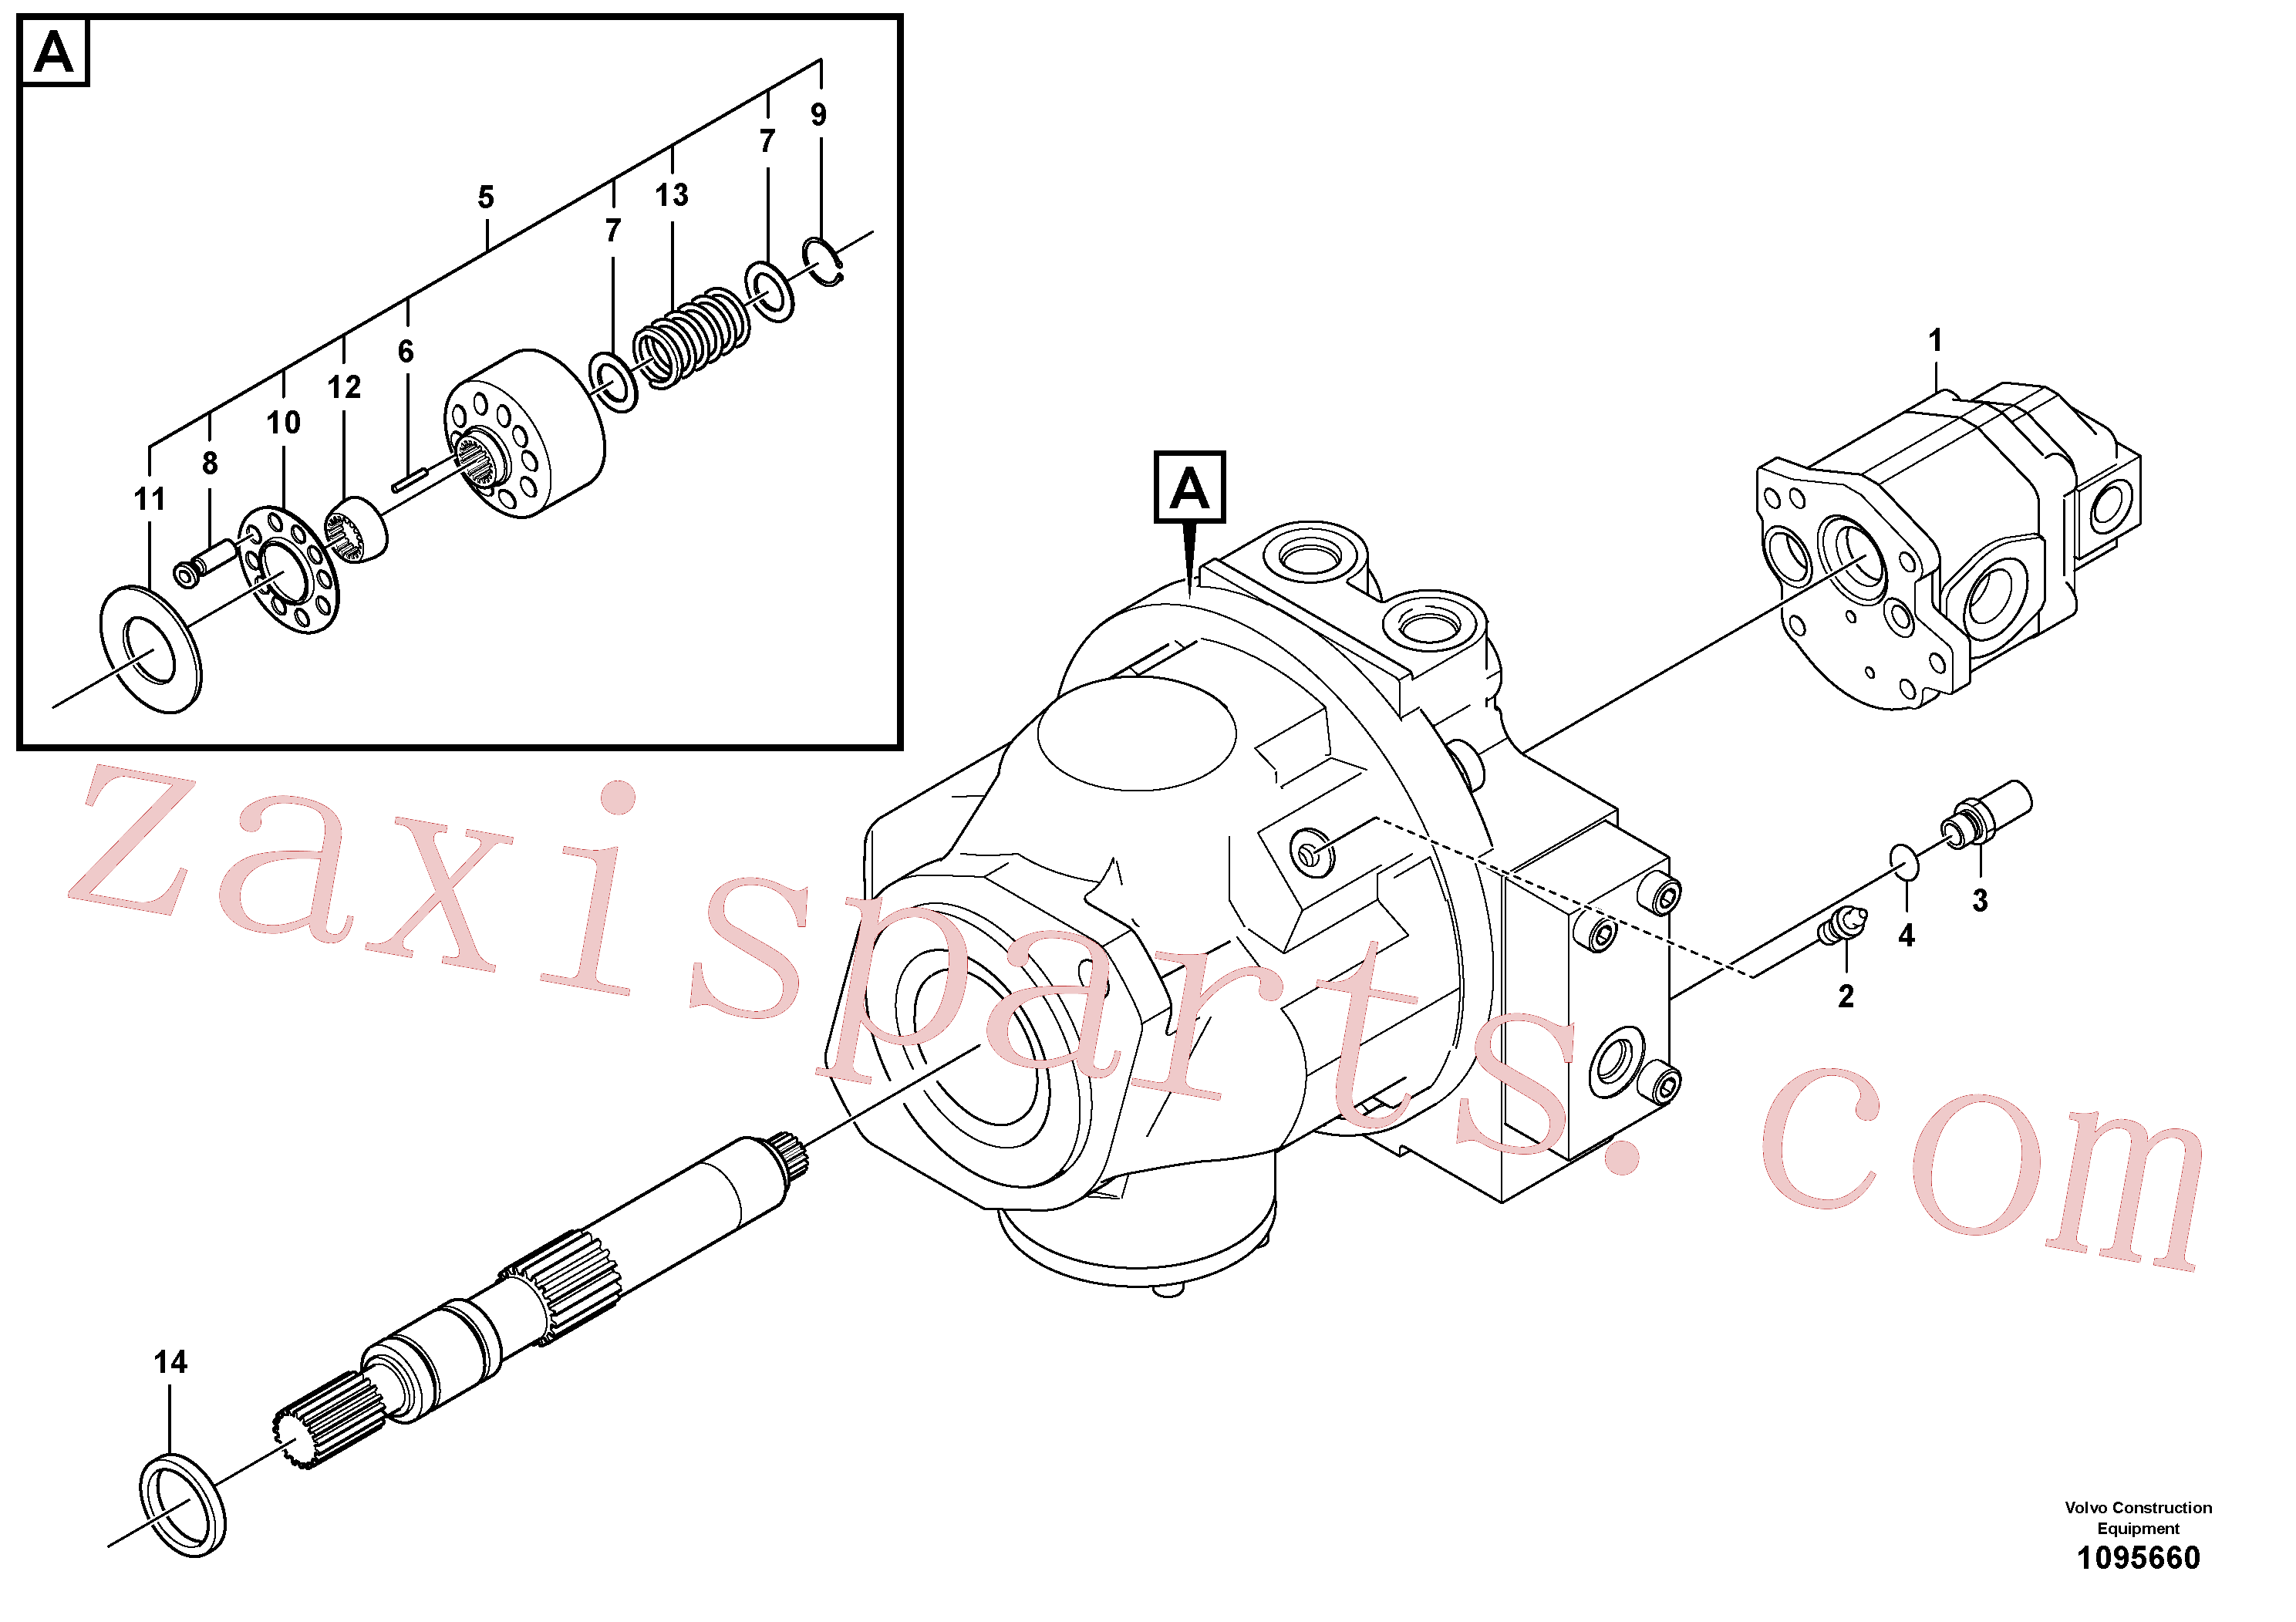 VOE14694293 for Volvo Hydraulic pump(1095660 assembly)